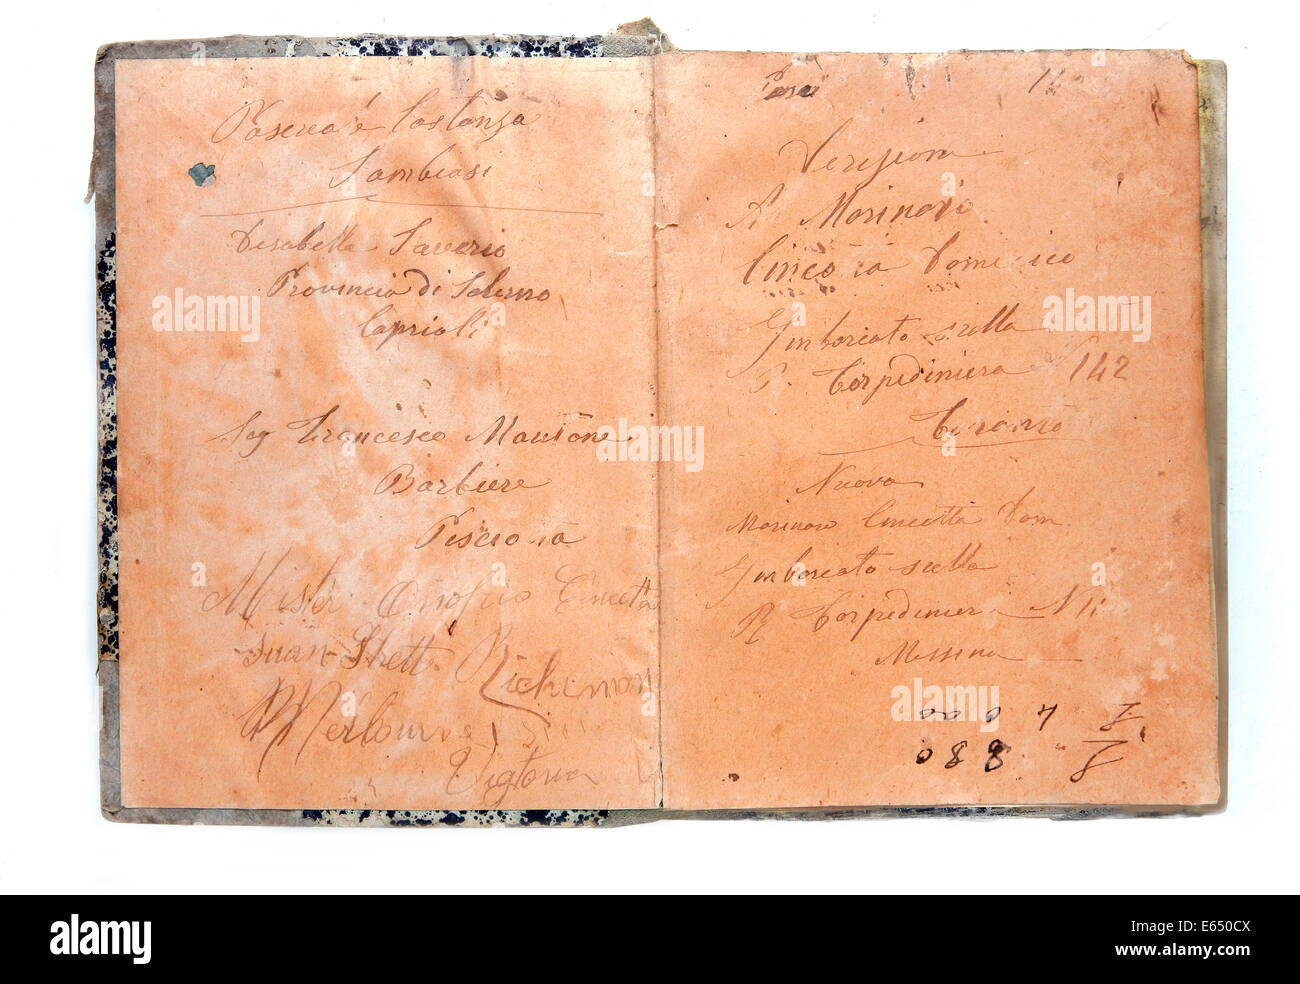 Historic debt register - Stock Image